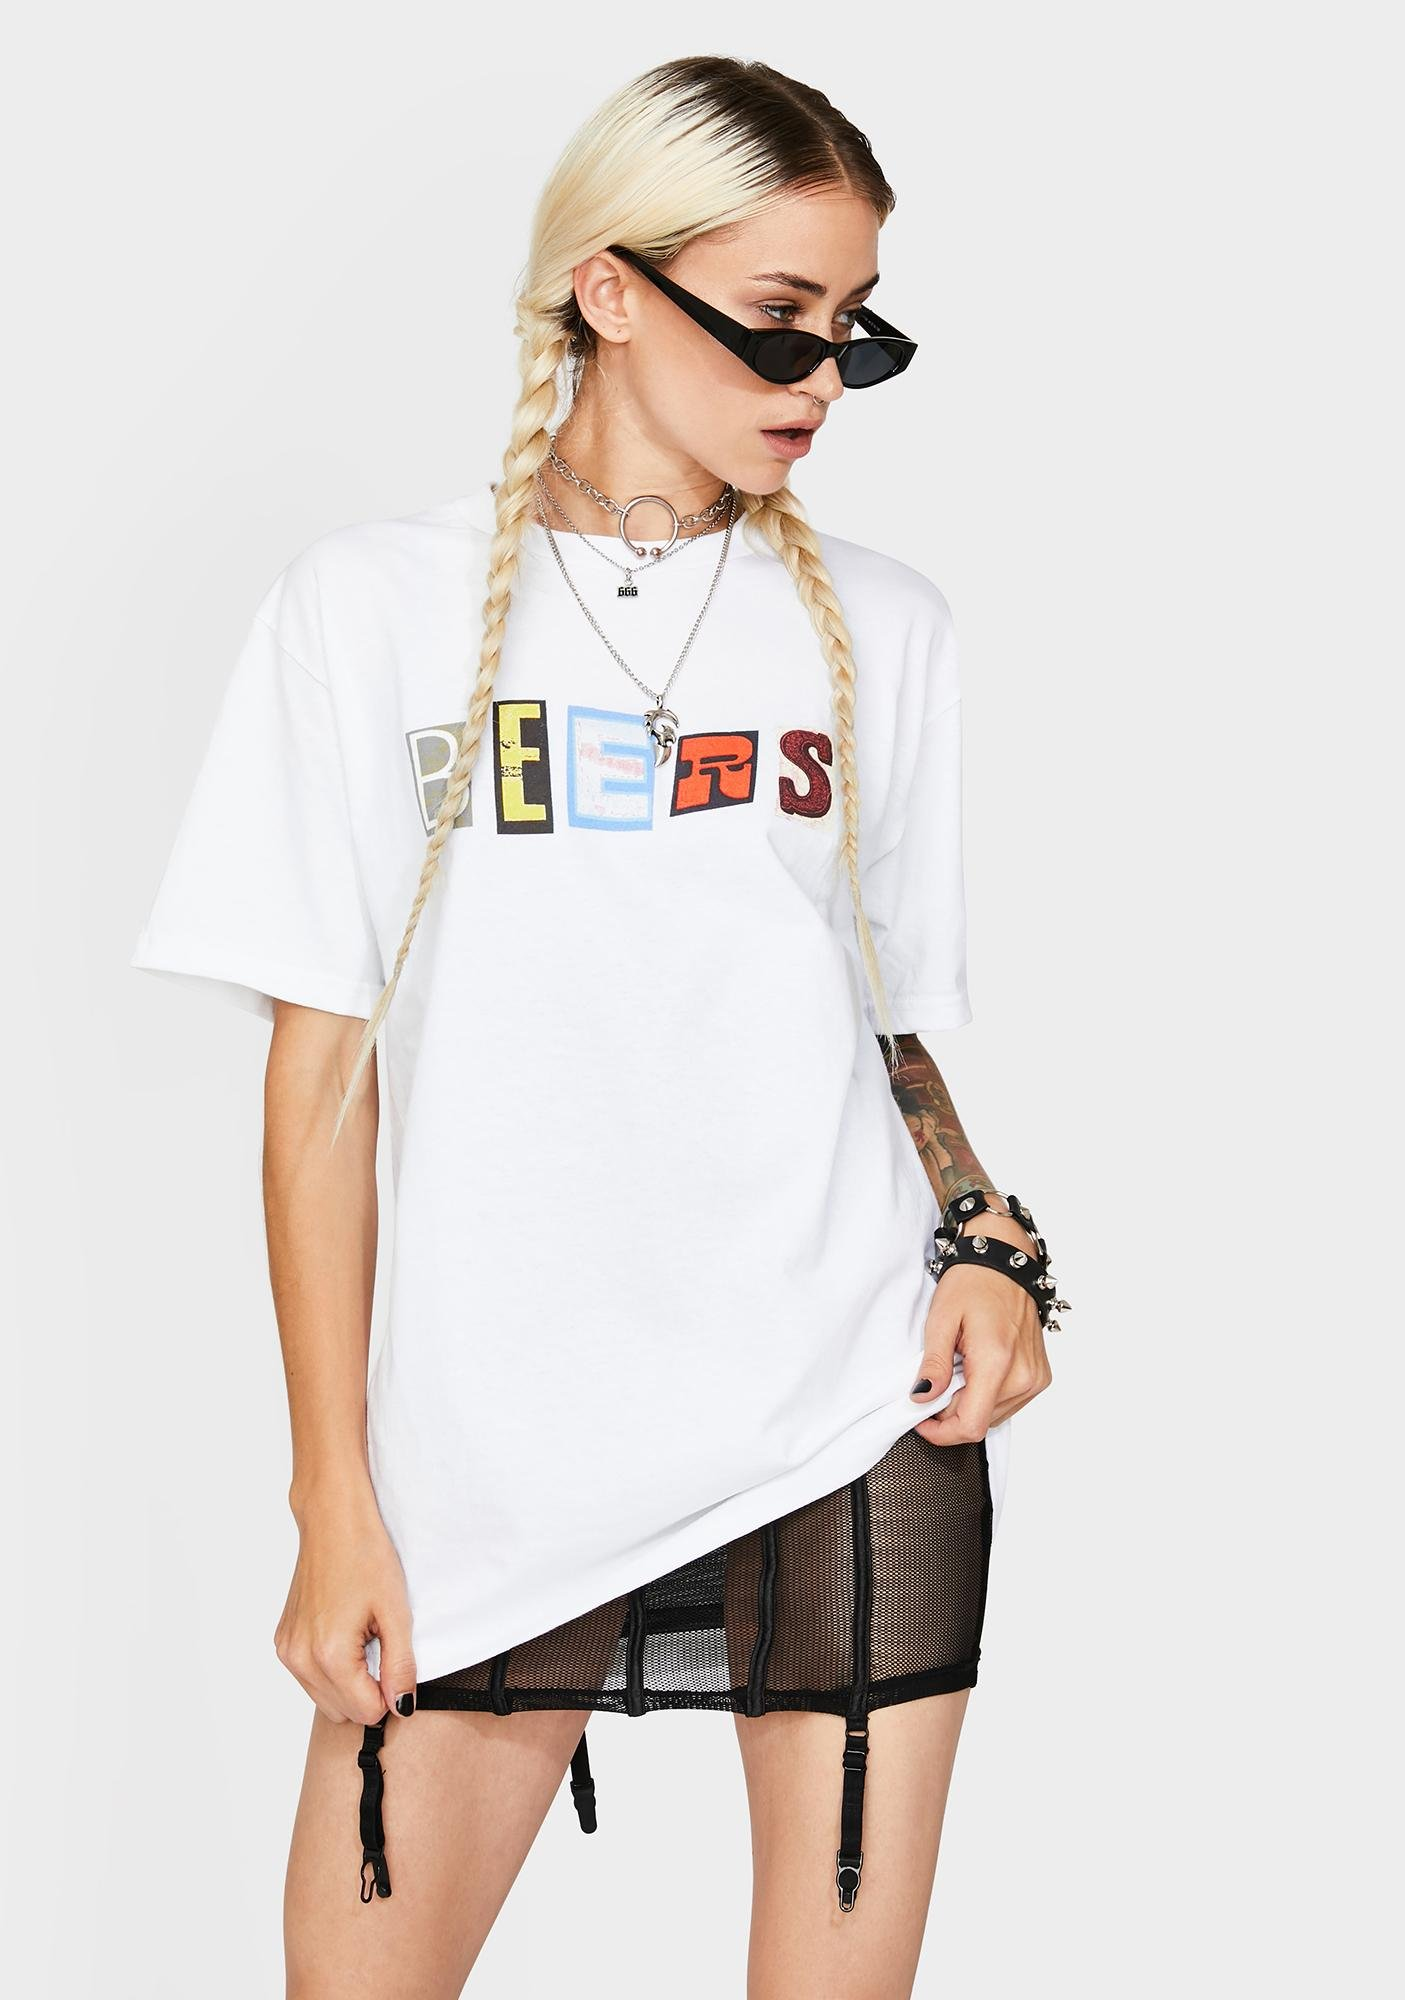 Beers Ransom Graphic Tee